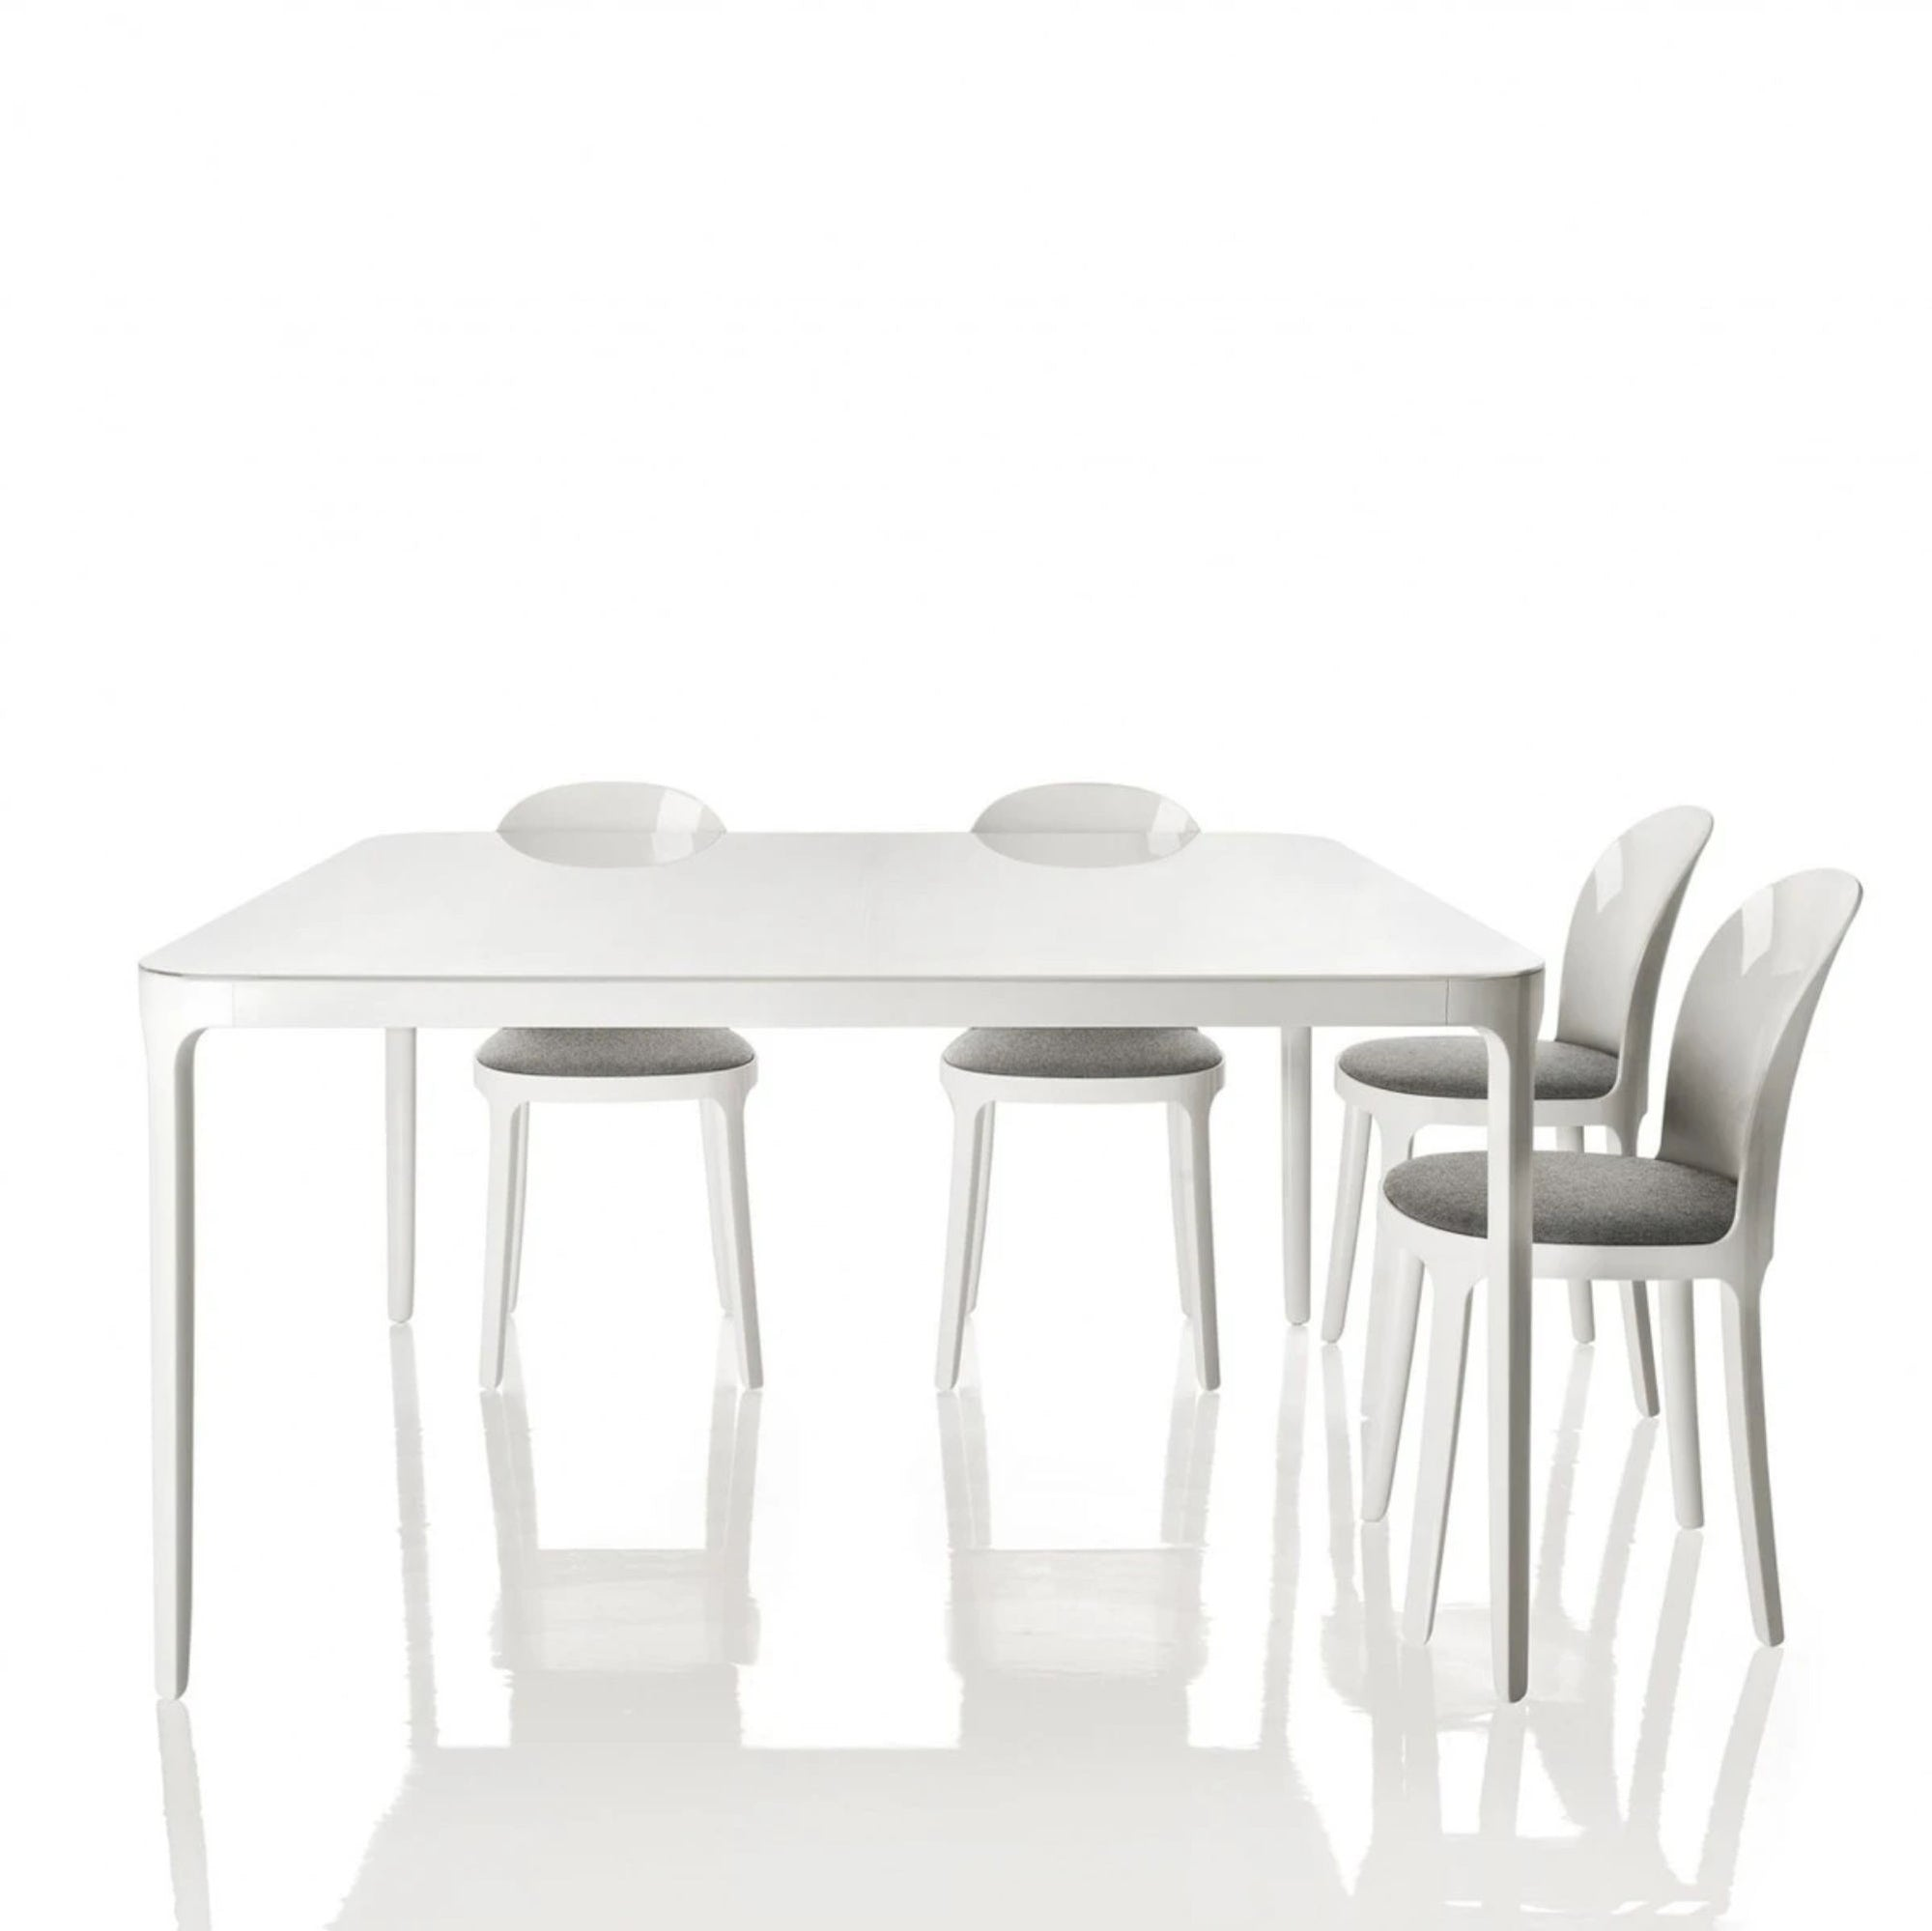 Magis Vanity Extending Table 160/220 cm White